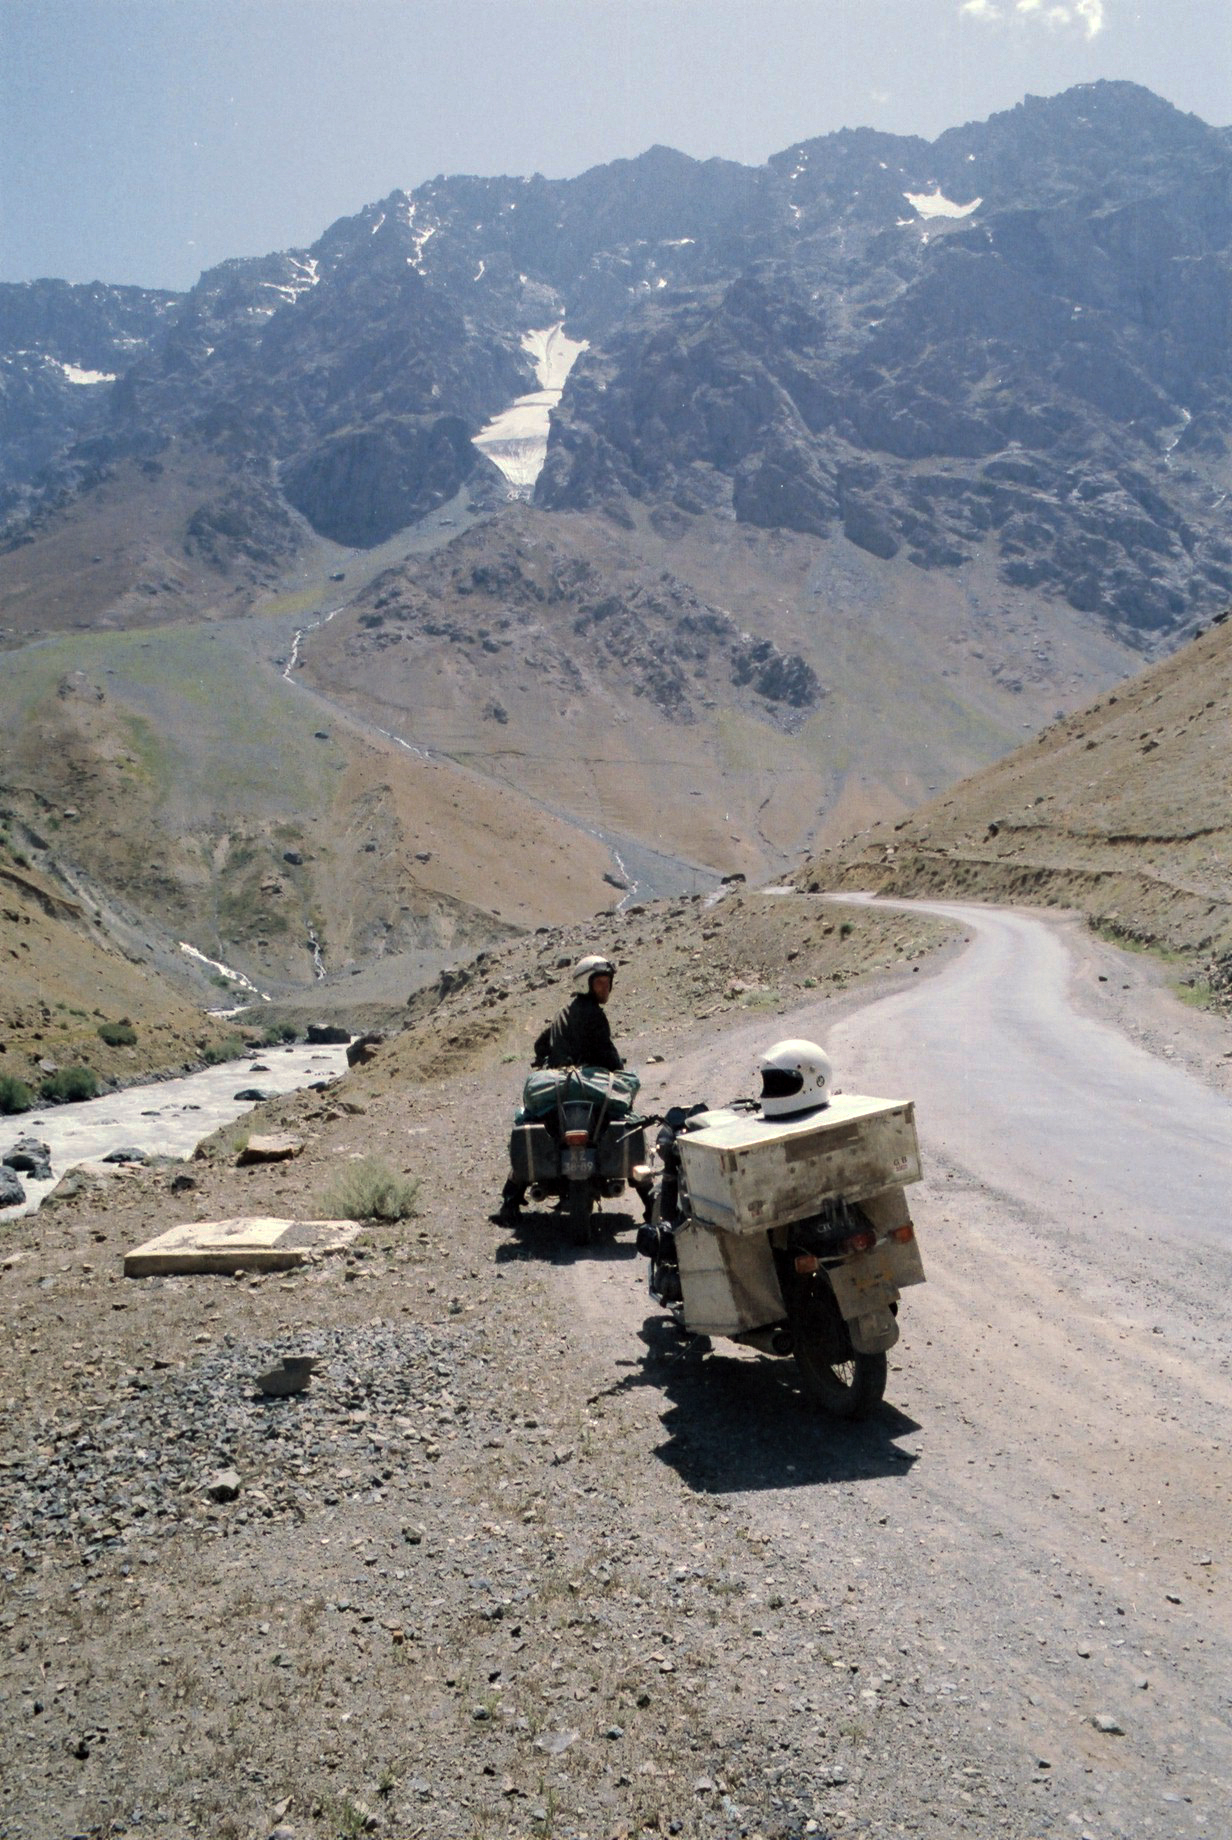 58. Road back to Srinagar - Ladakh